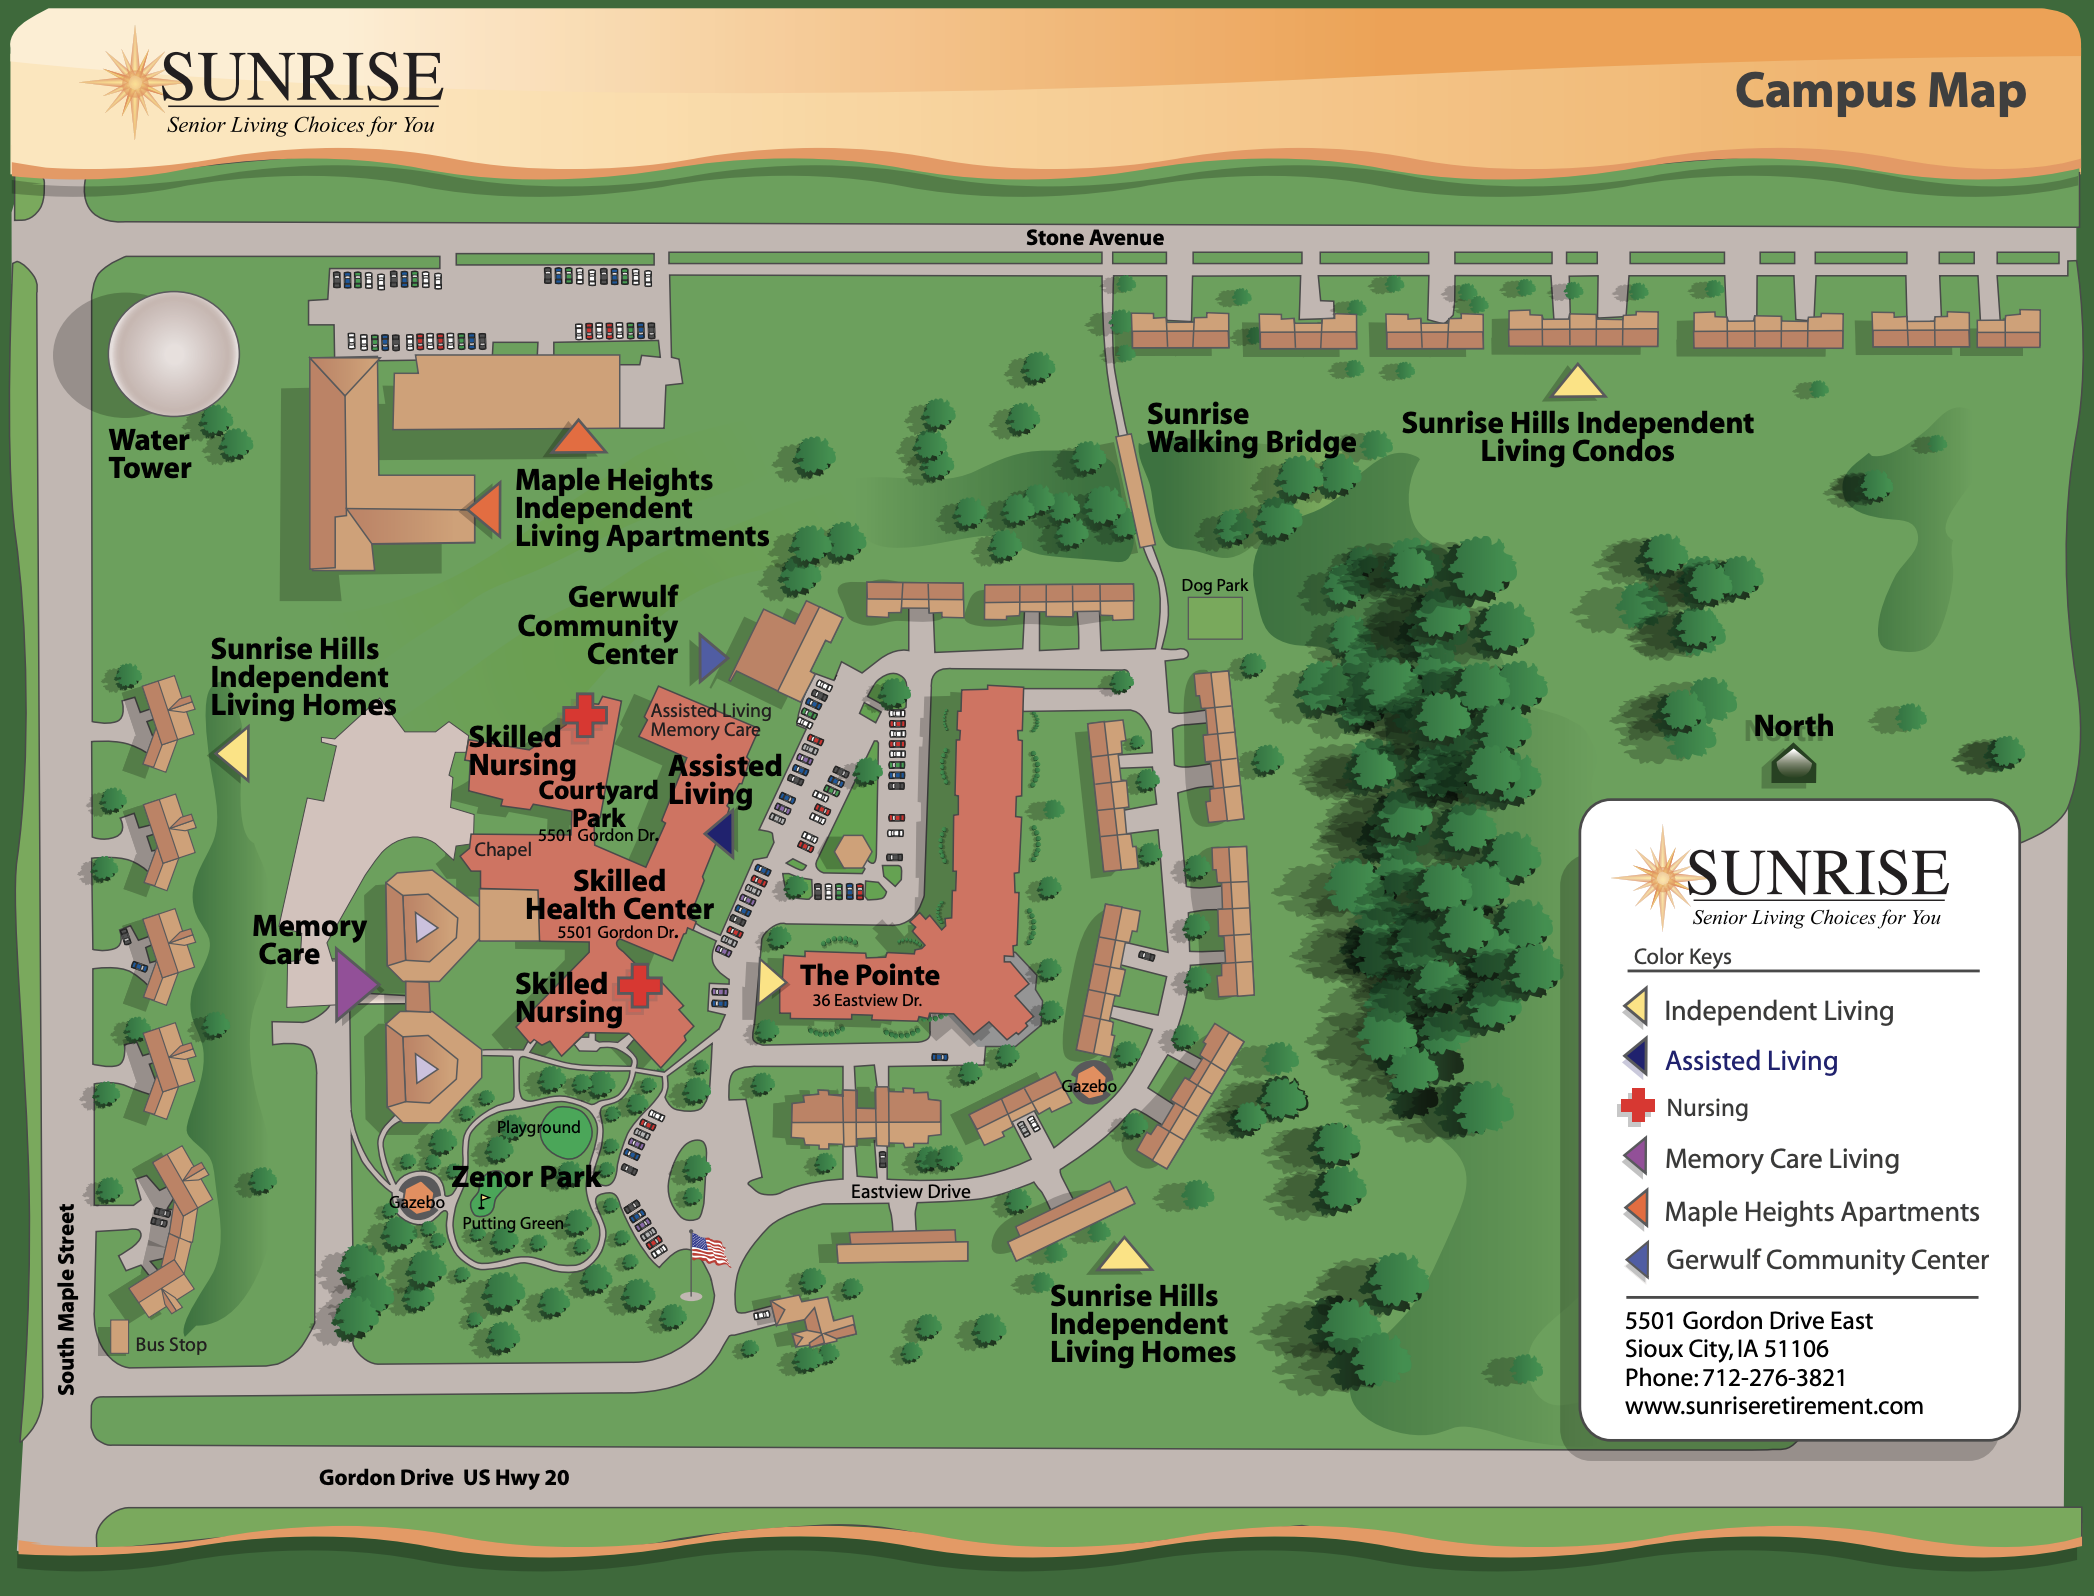 sunrise campus map